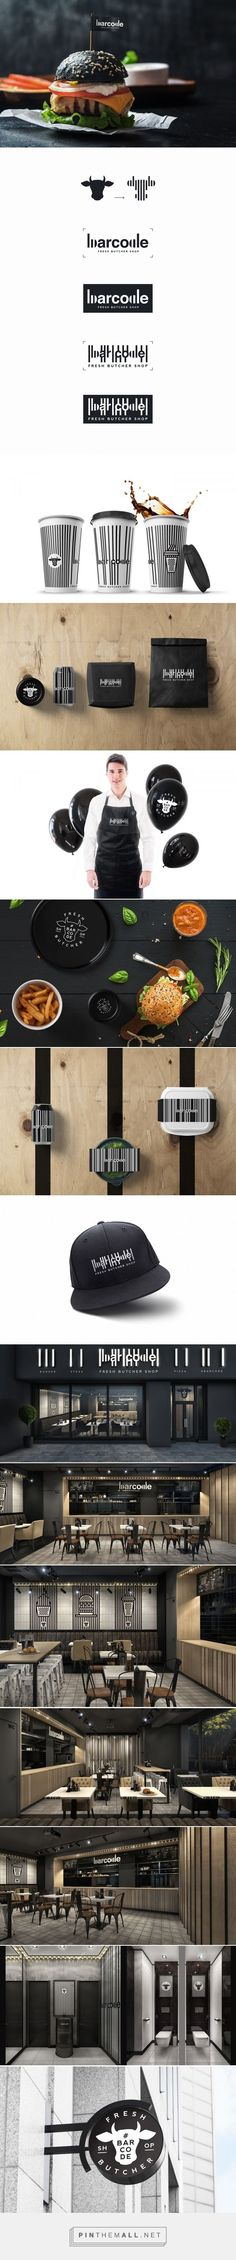 Bar Code Shop Eatery Branding by Alex Smart | Fivestar Branding Agency – Design and Branding Agency & Curated Inspiration Gallery